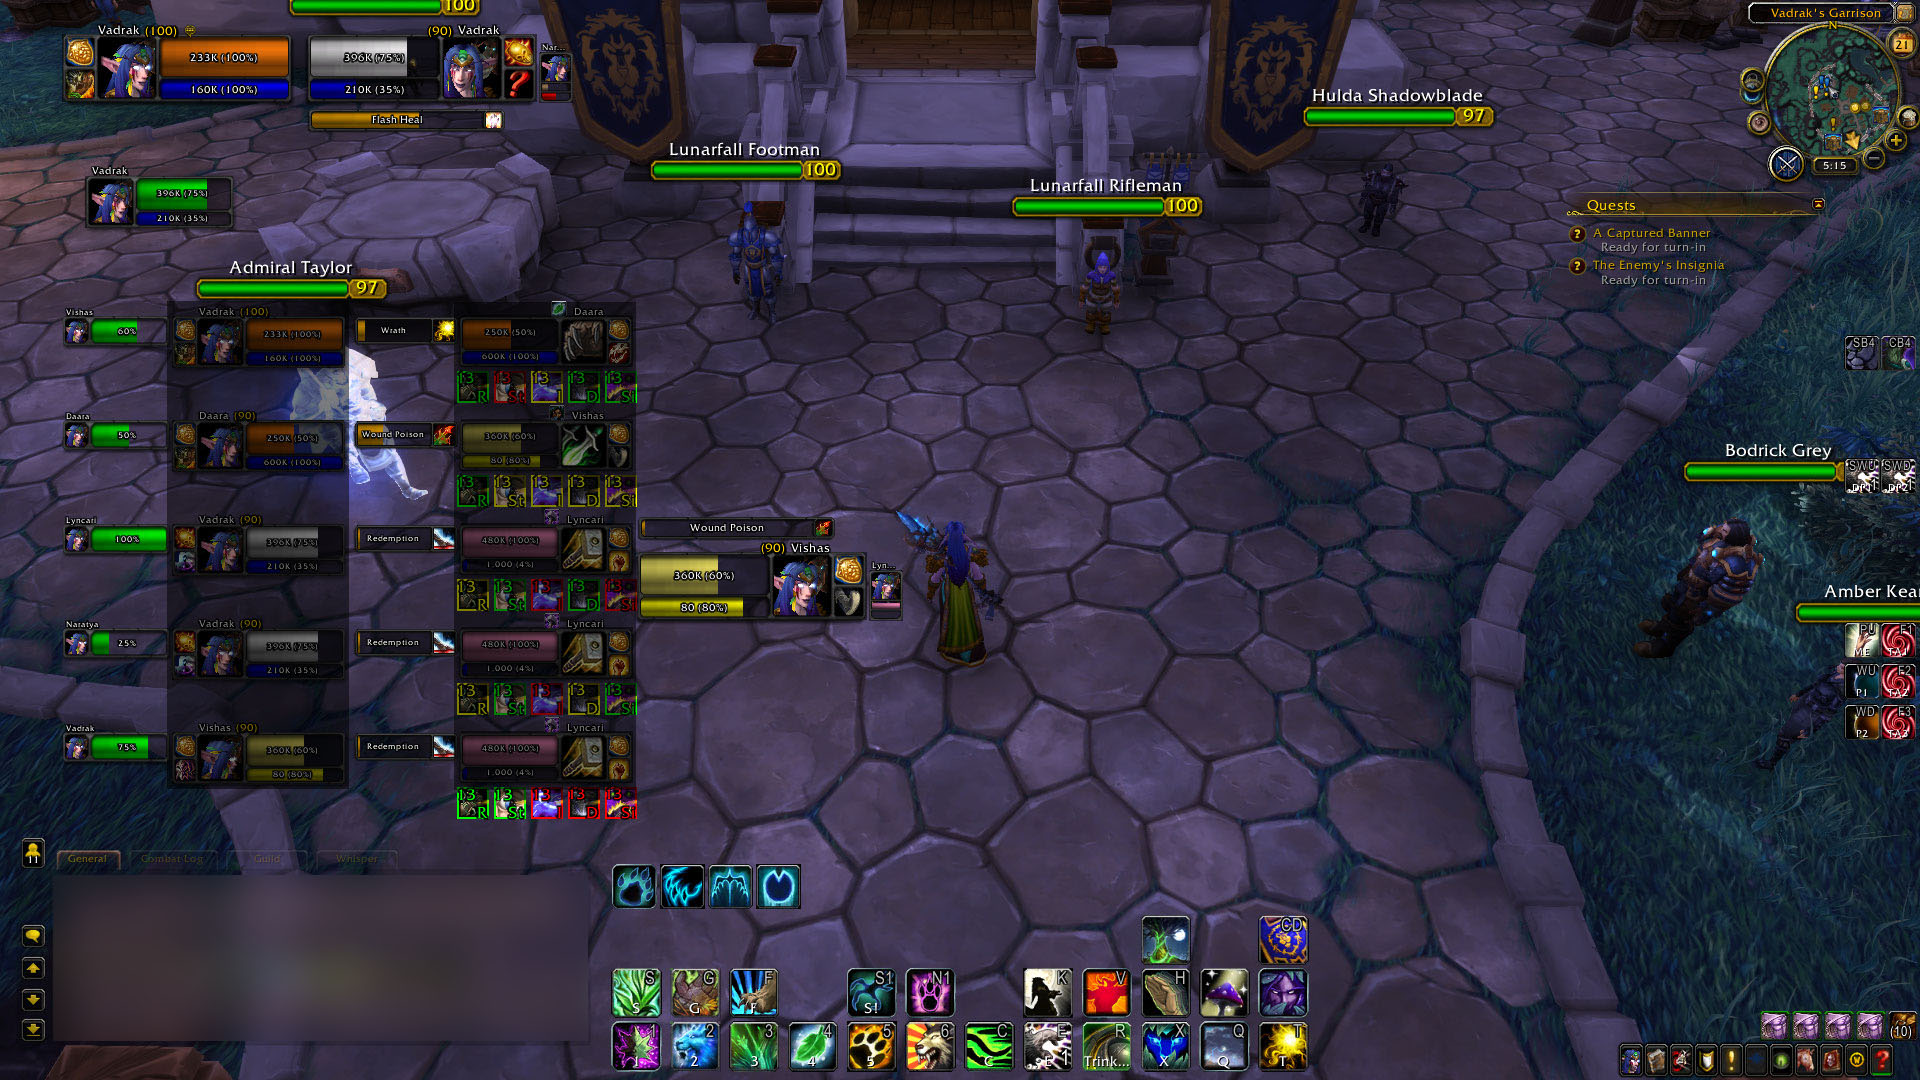 WoW ArenaLive [UnitFrames] addon bfa/classic 2019